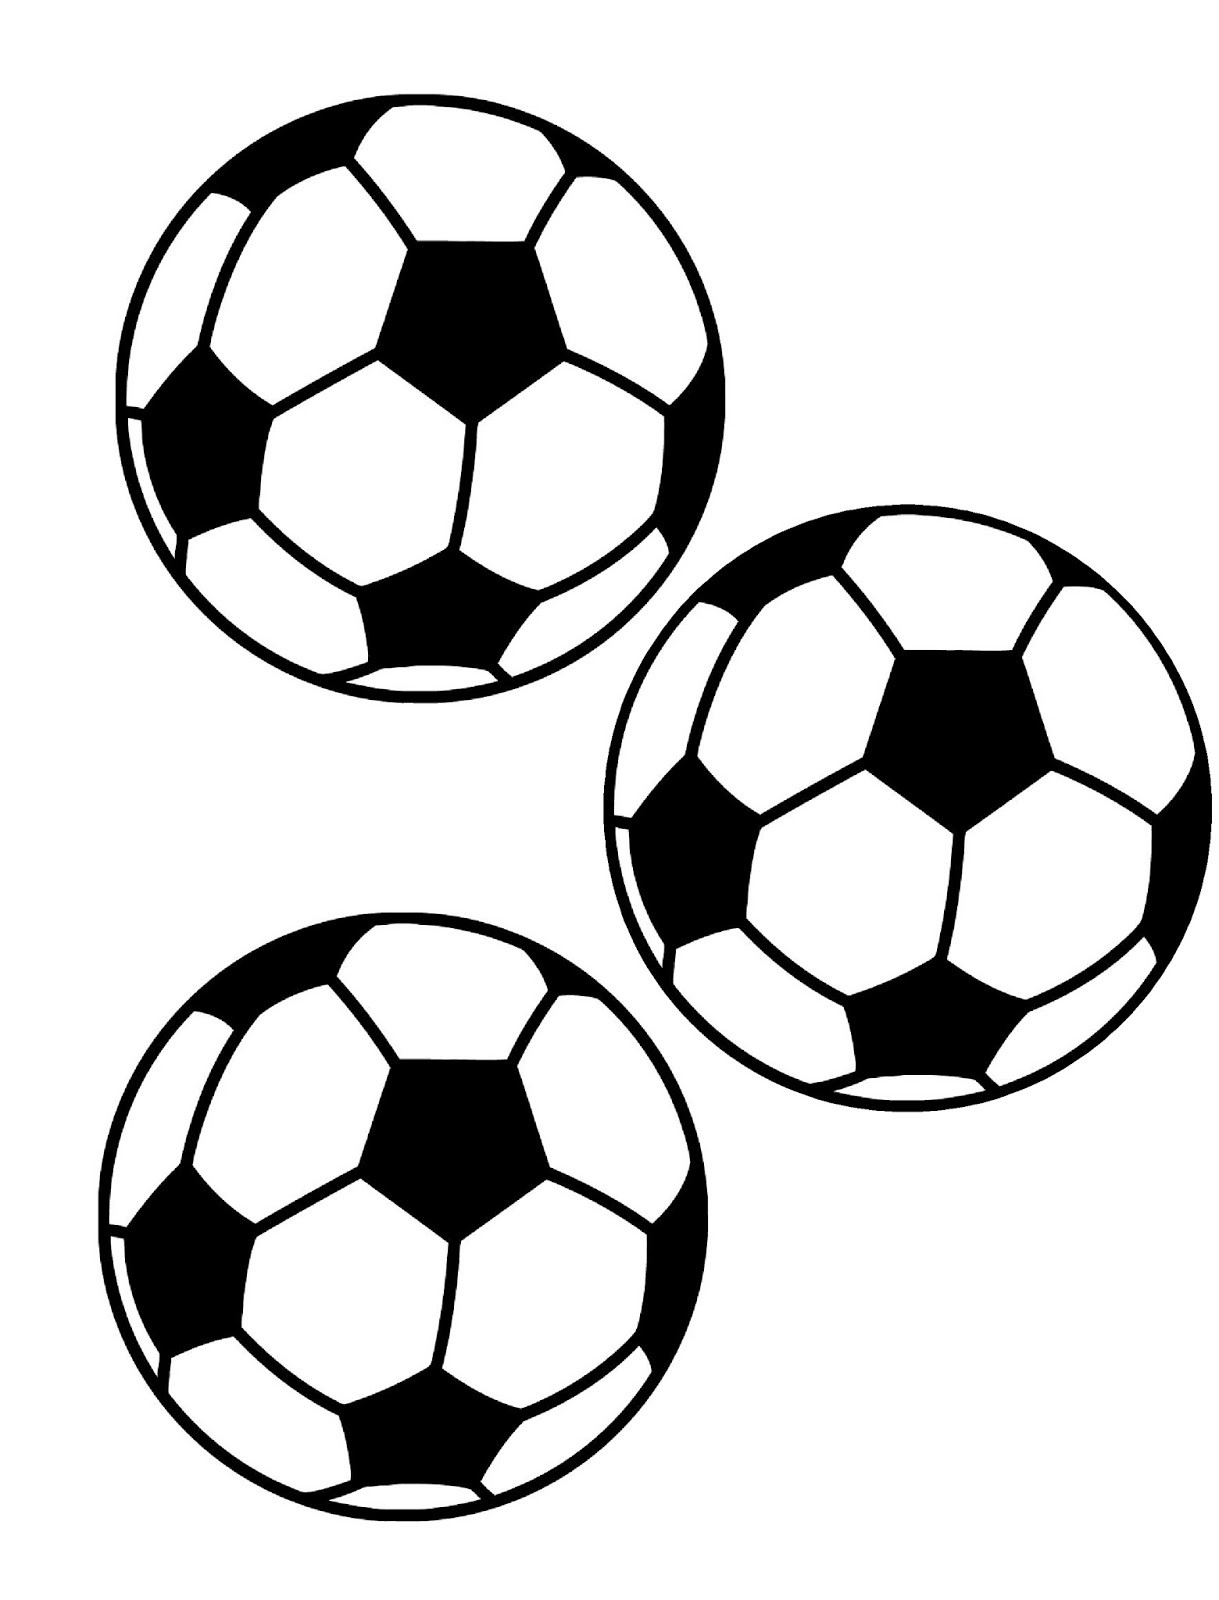 1219x1600 Awesome Soccer Ball Coloring Page Coloring Pages Activities